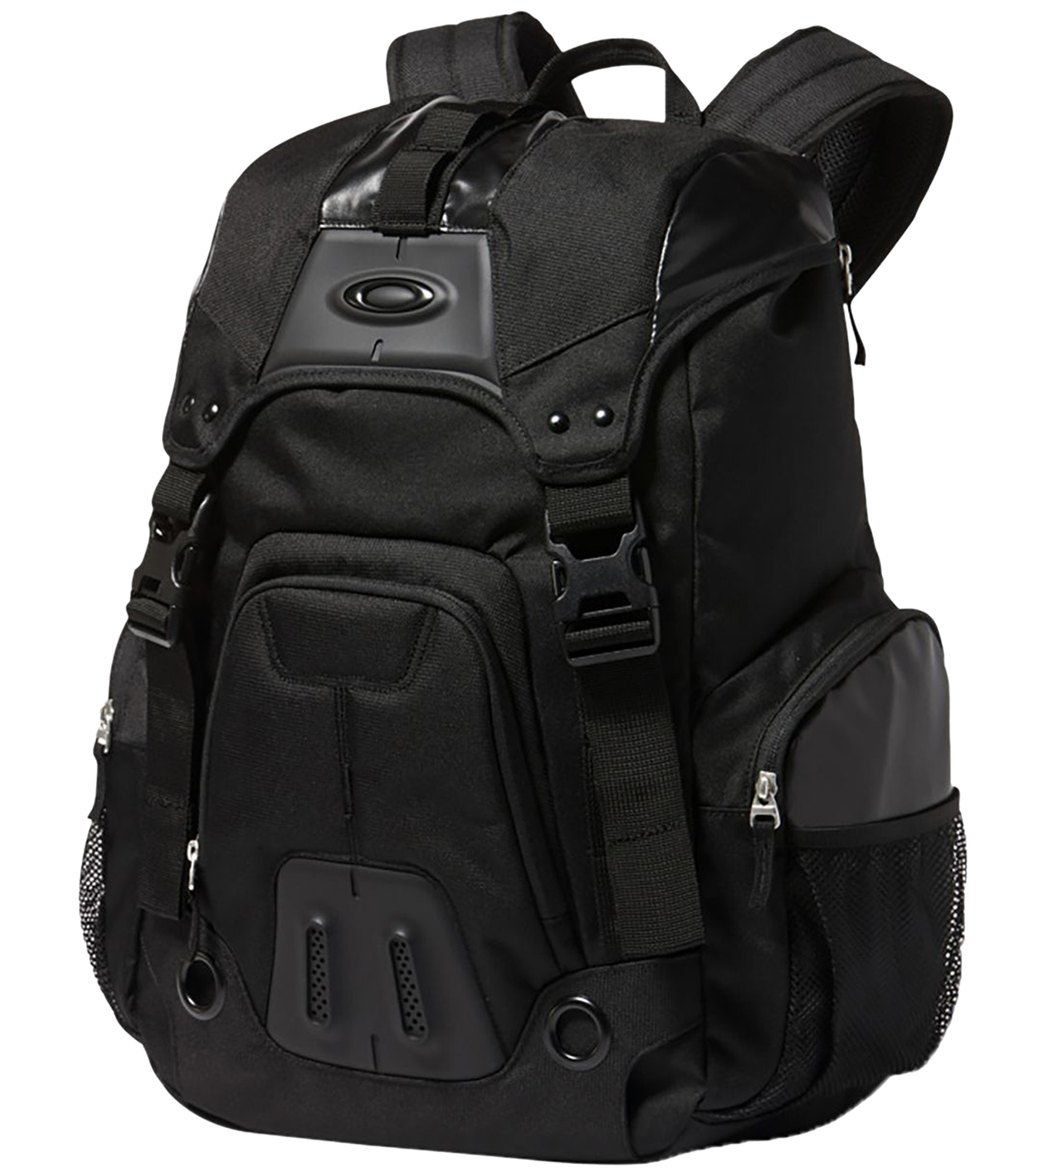 d4e83b02609 Oakley Gearbox LX Backpack at SwimOutlet.com - Free Shipping